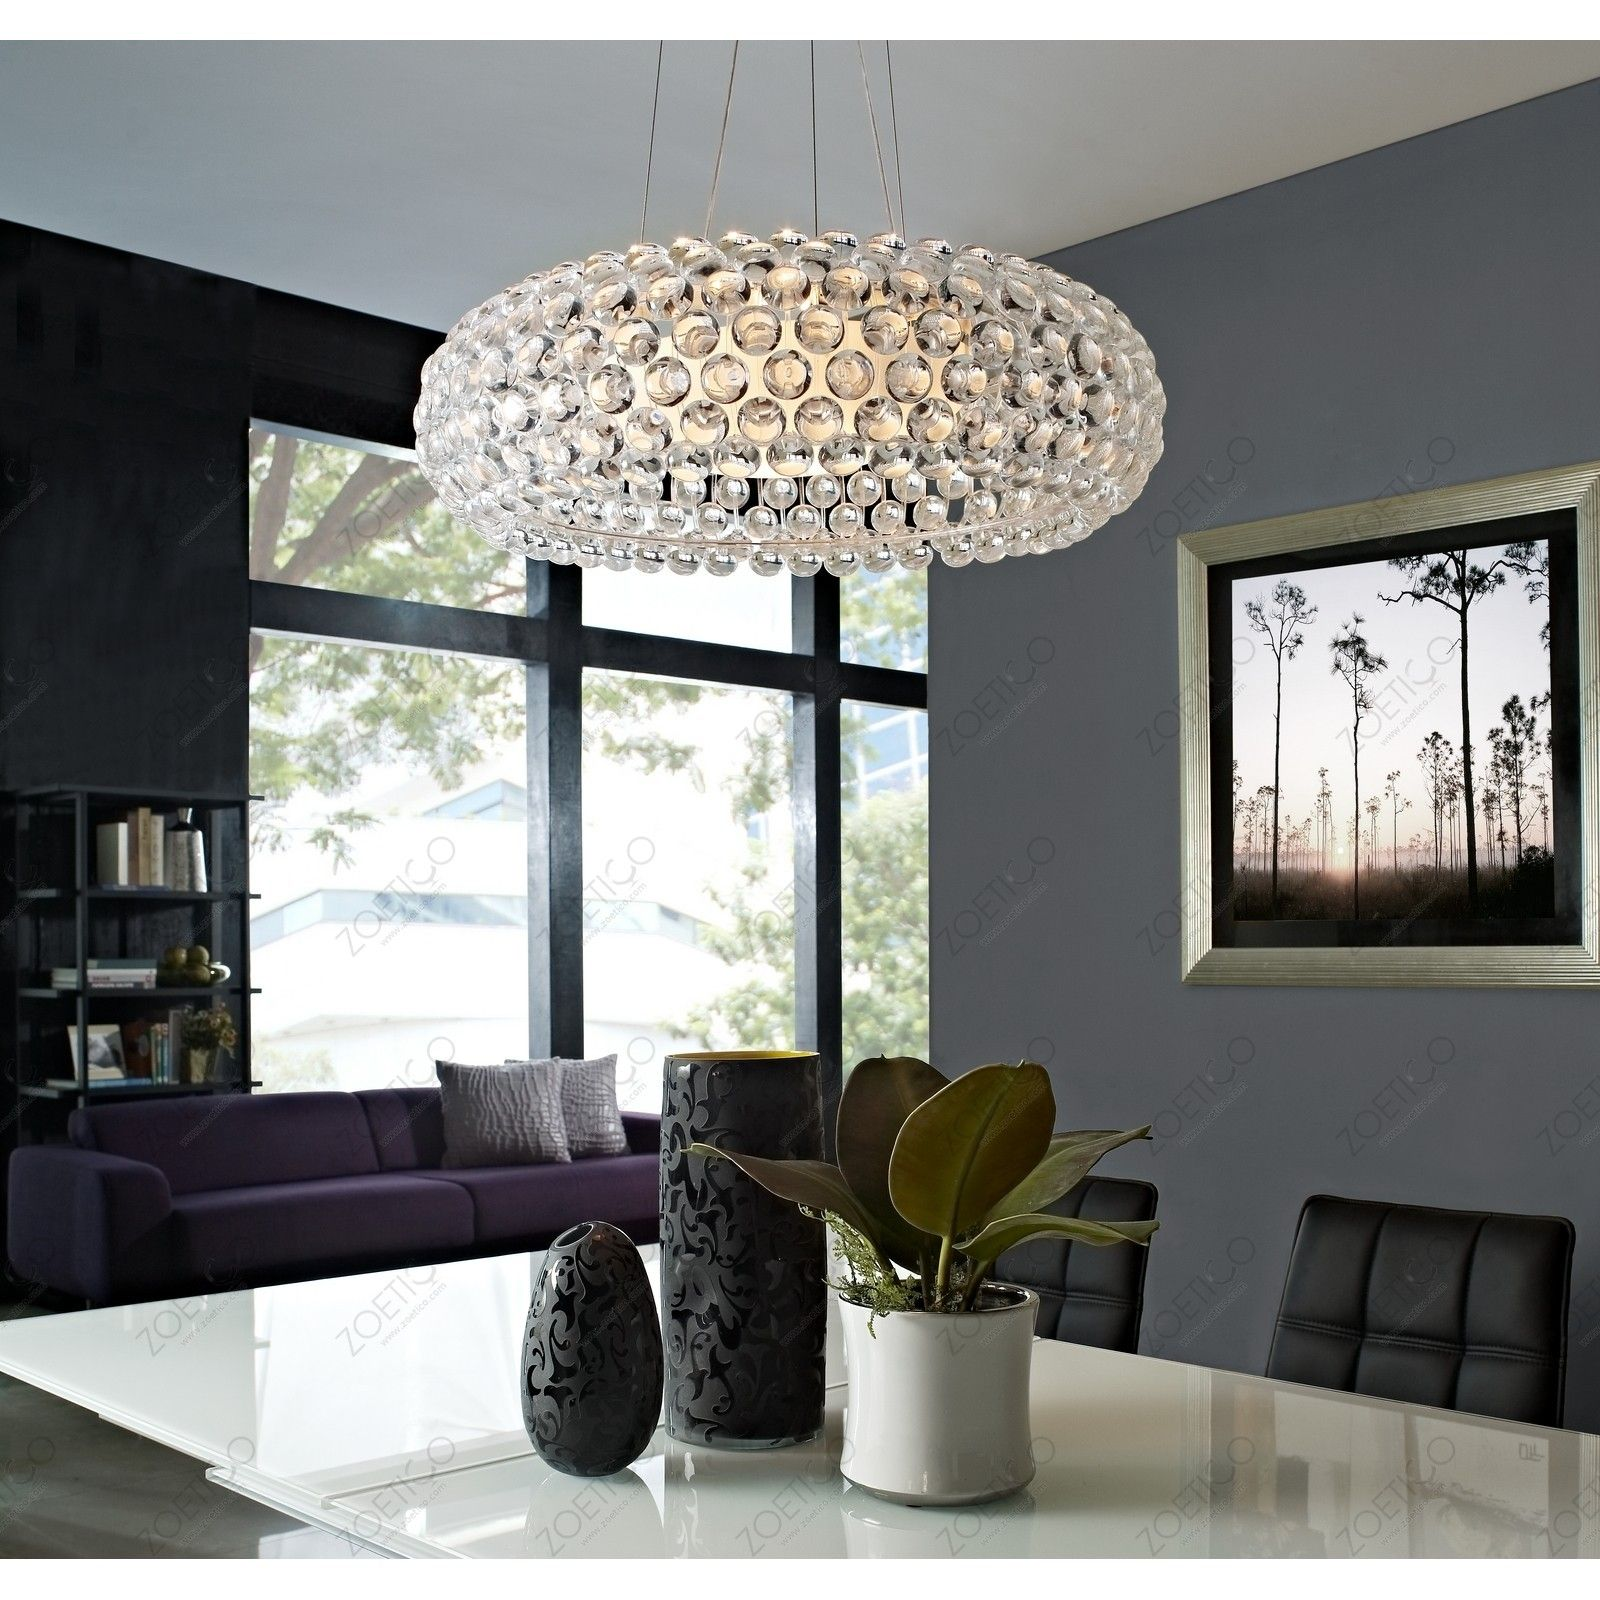 Halo Acrylic Crystal Chandelier From California Modern Classics Thinking This Could Be An Interesting Light Fixture For The Boys 4 Bedroom